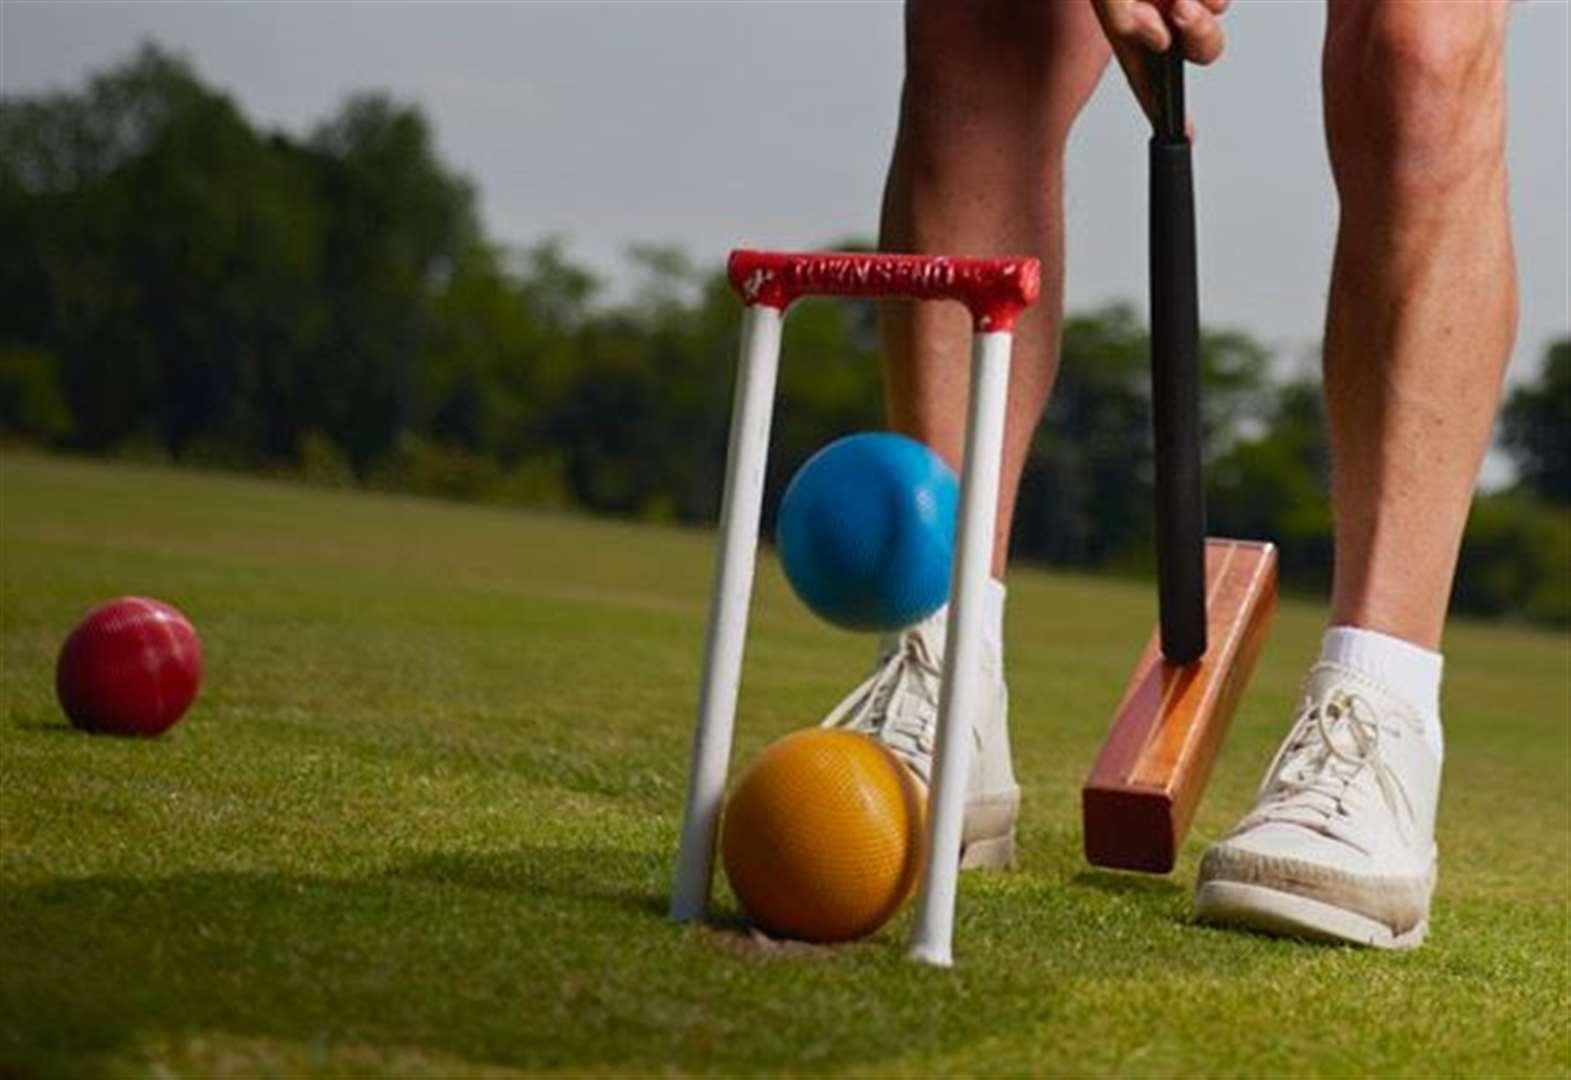 Our World of Sport: Croquet